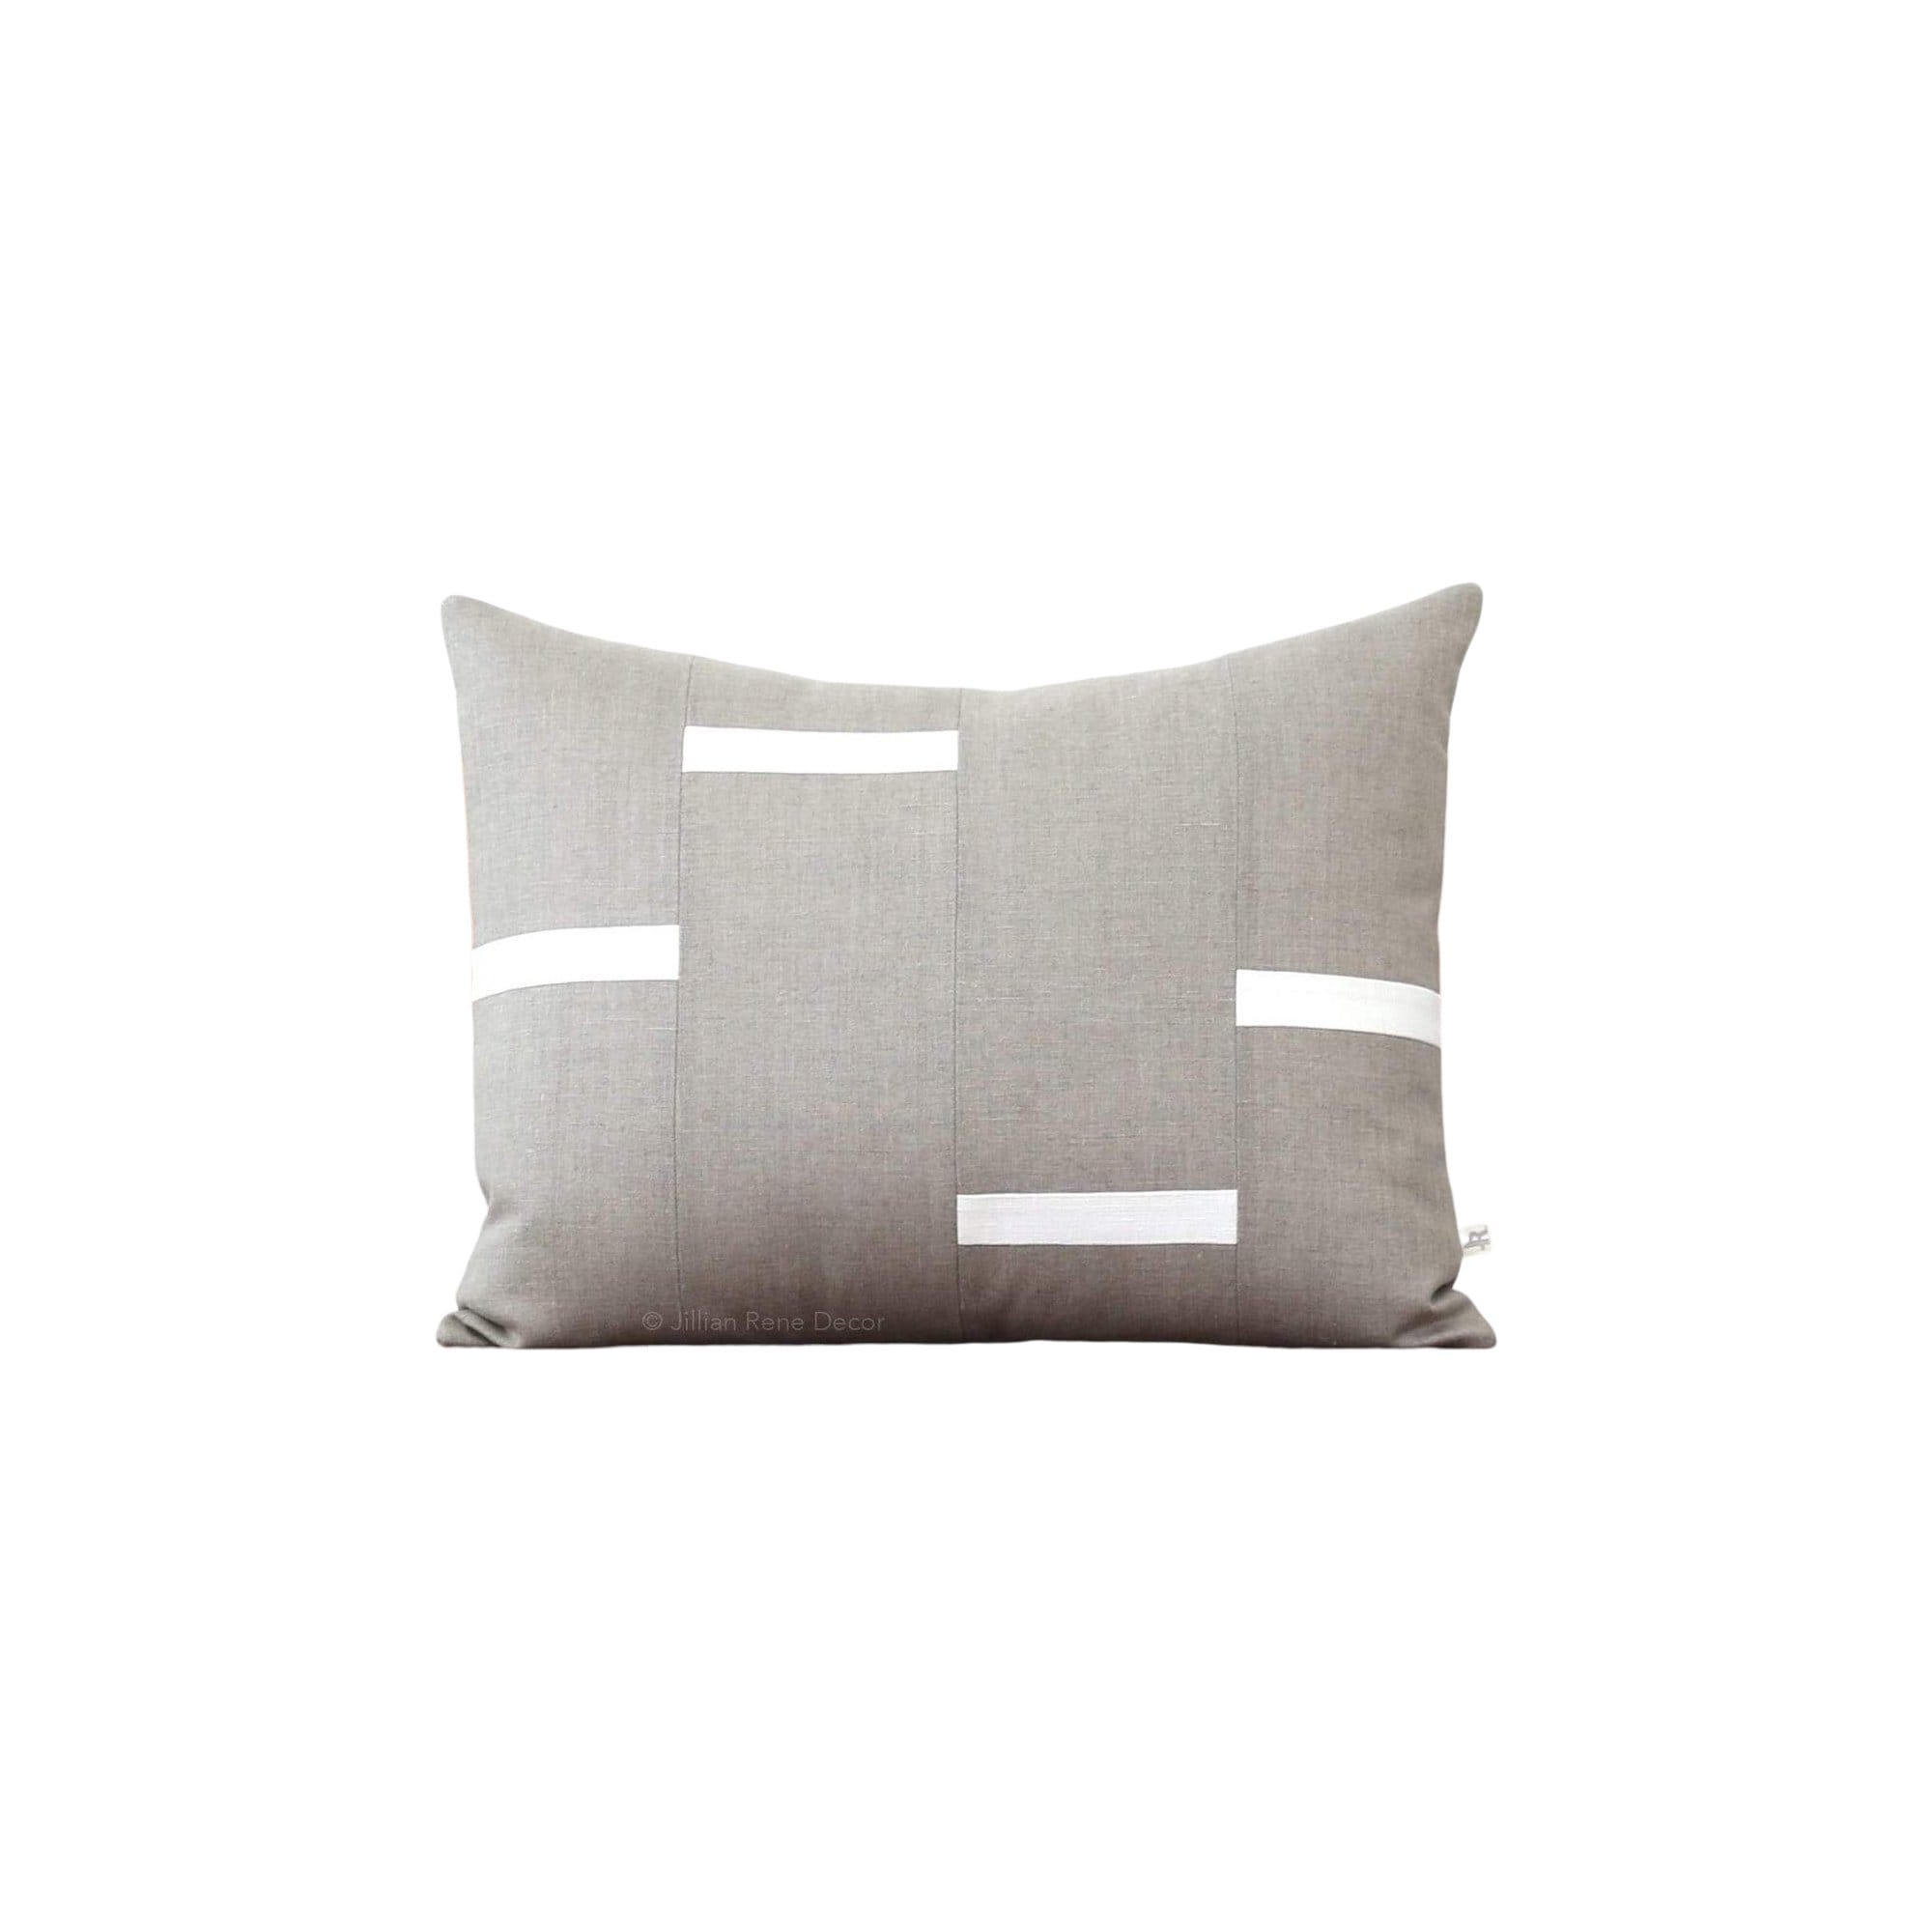 Interconnection Pillow - Natural Linen with Cream Dashes